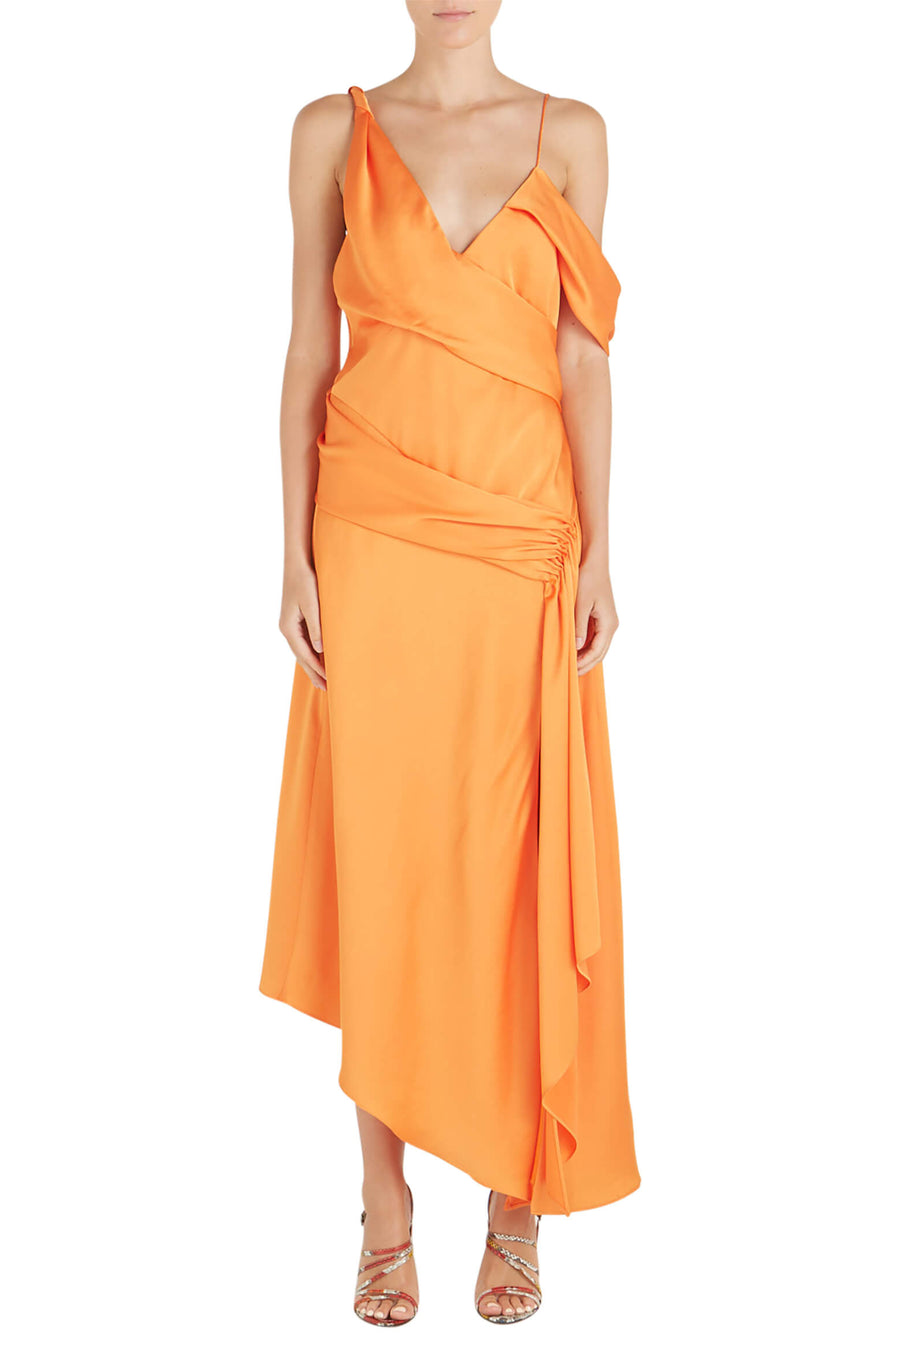 Jonathan Simkhai Fluid Satin Asymmetric Drape Gown in Tangerine from The New Trend